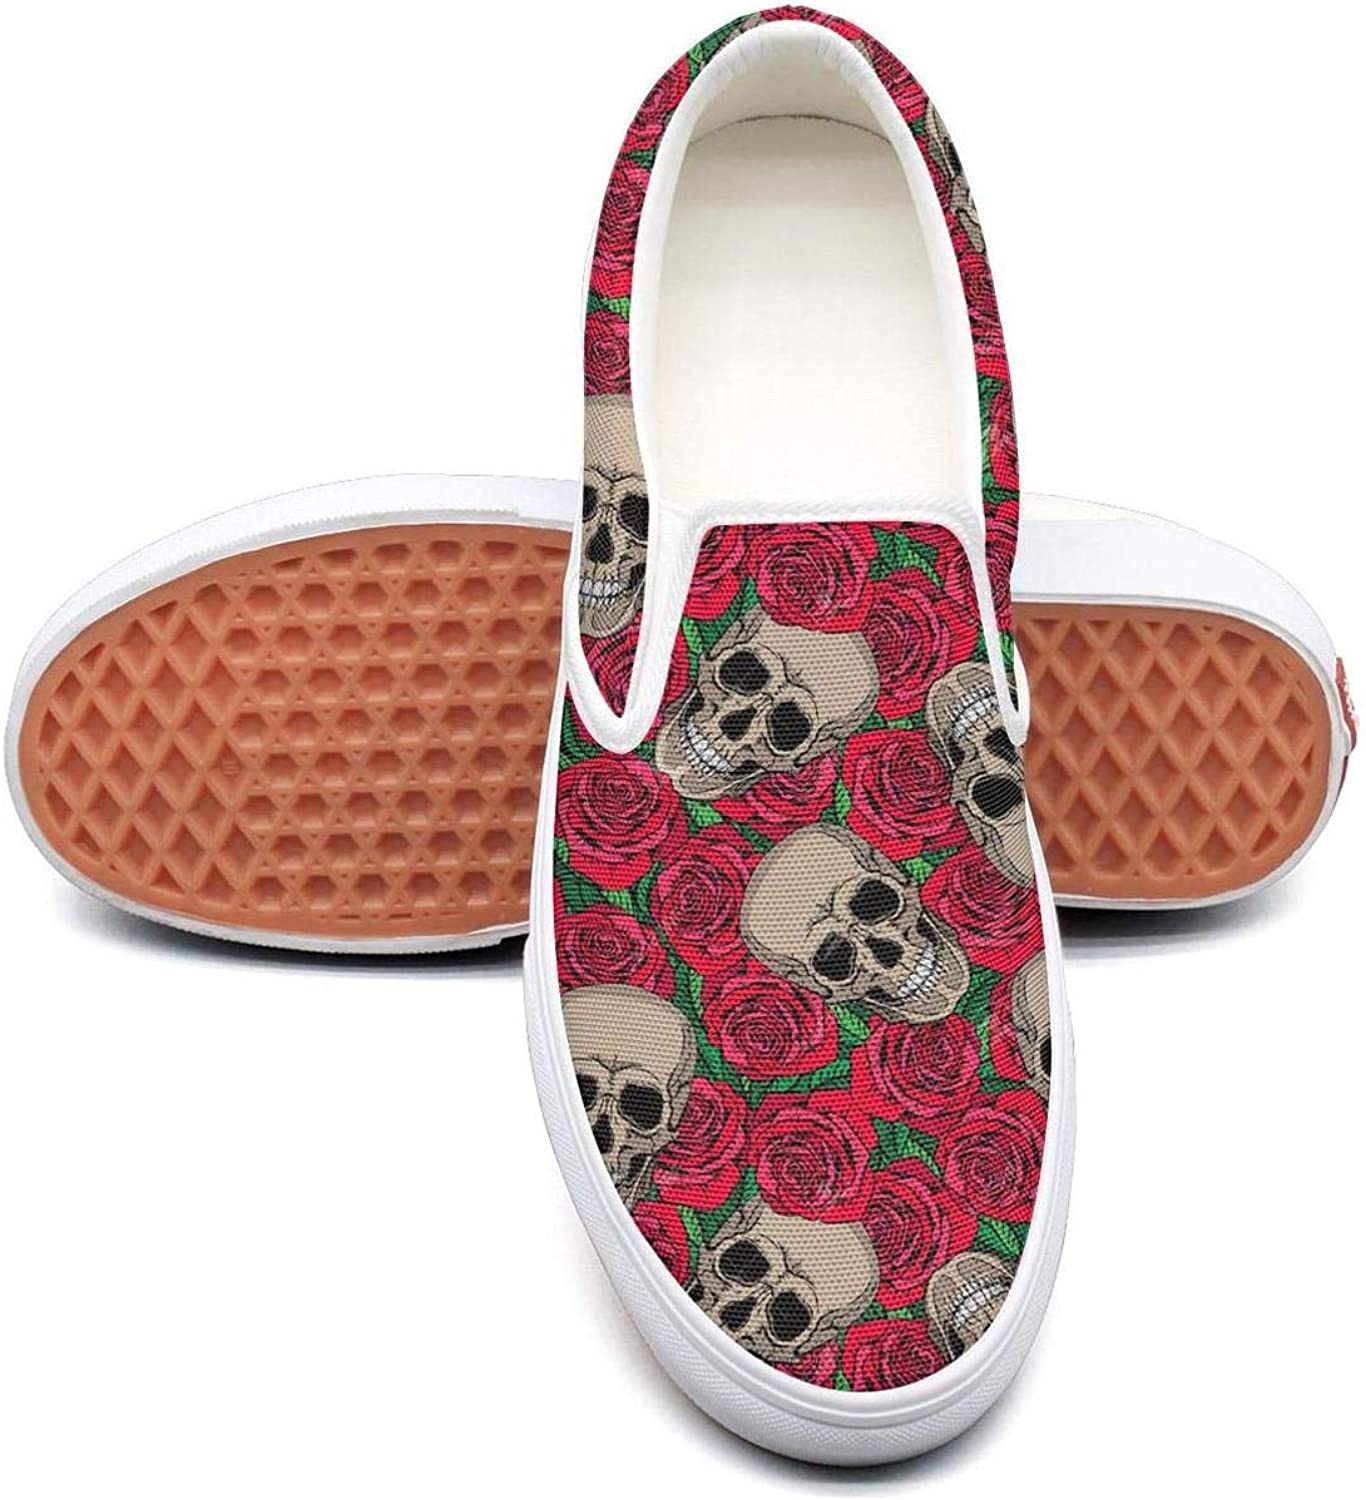 Red pink Flowers and Skull Bones Patch Slip On Canvas Upper Loafers Canvas shoes for Women Fashion